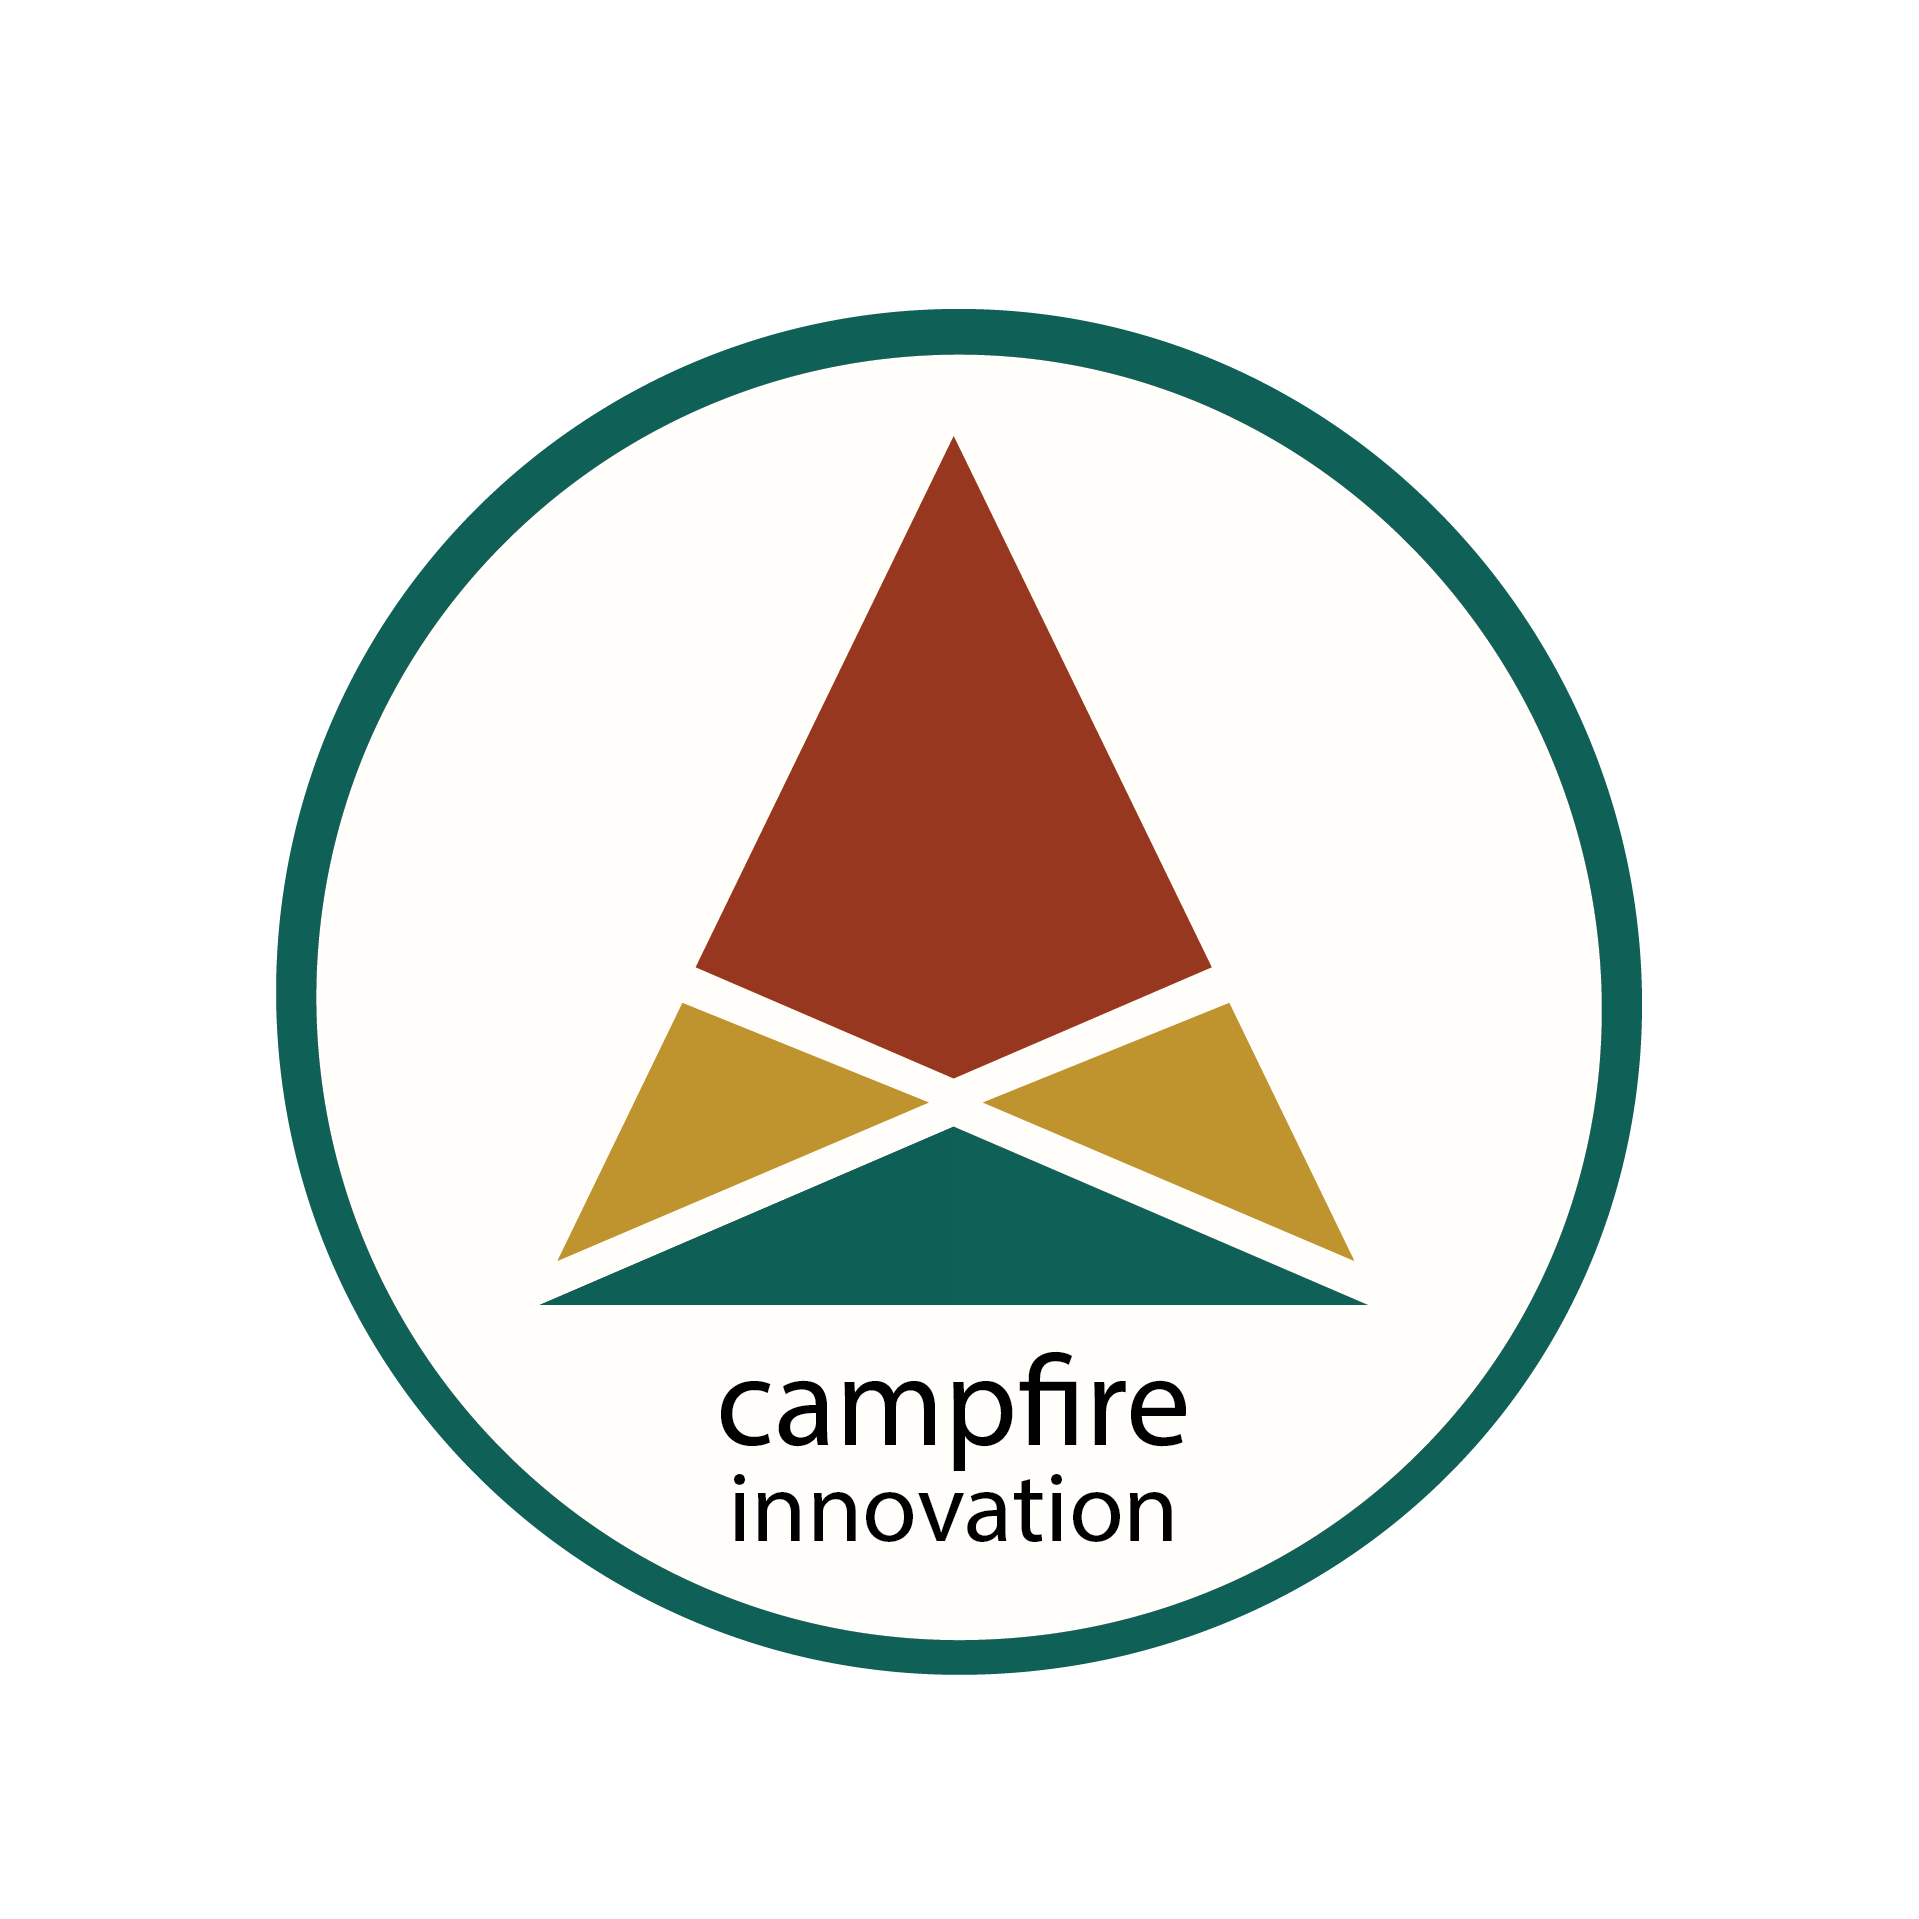 Support us - Campfire relies on the donations of many—not just large grant foundations. Without donations from crowdfunding campaigns, grant applications, and private individual donors, we wouldn't be able to continue the work we're doing—with and for the grassroots.